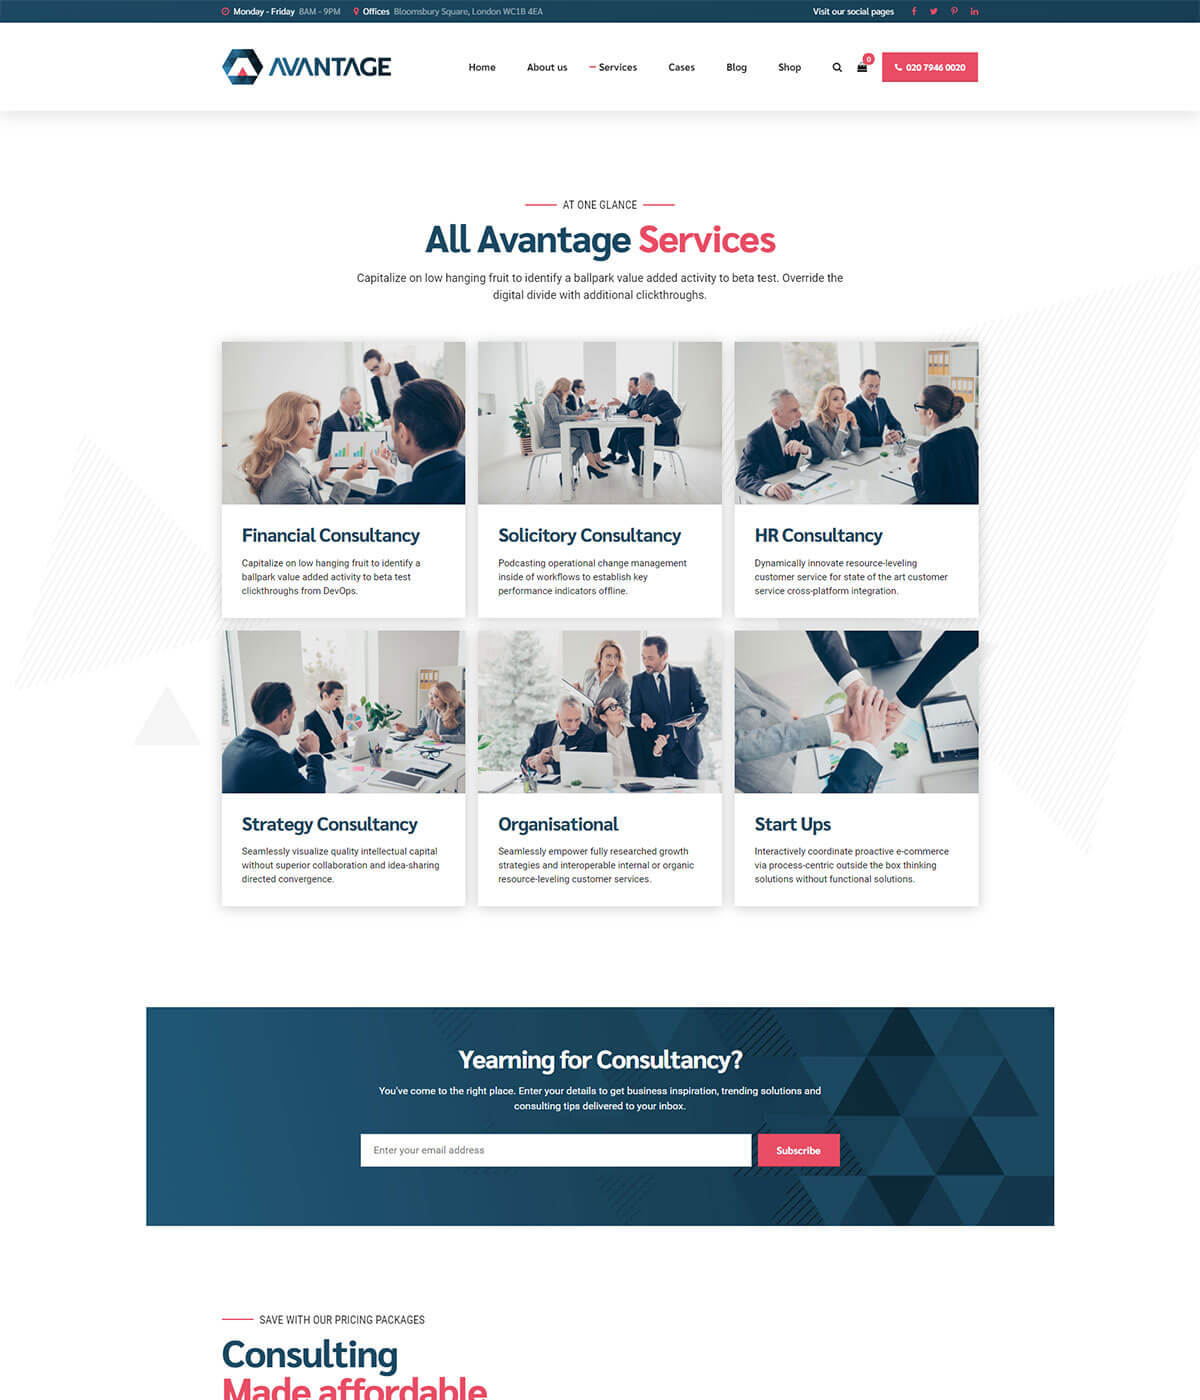 https://avantage.bold-themes.com/wp-content/uploads/2019/05/business-06-services.jpg